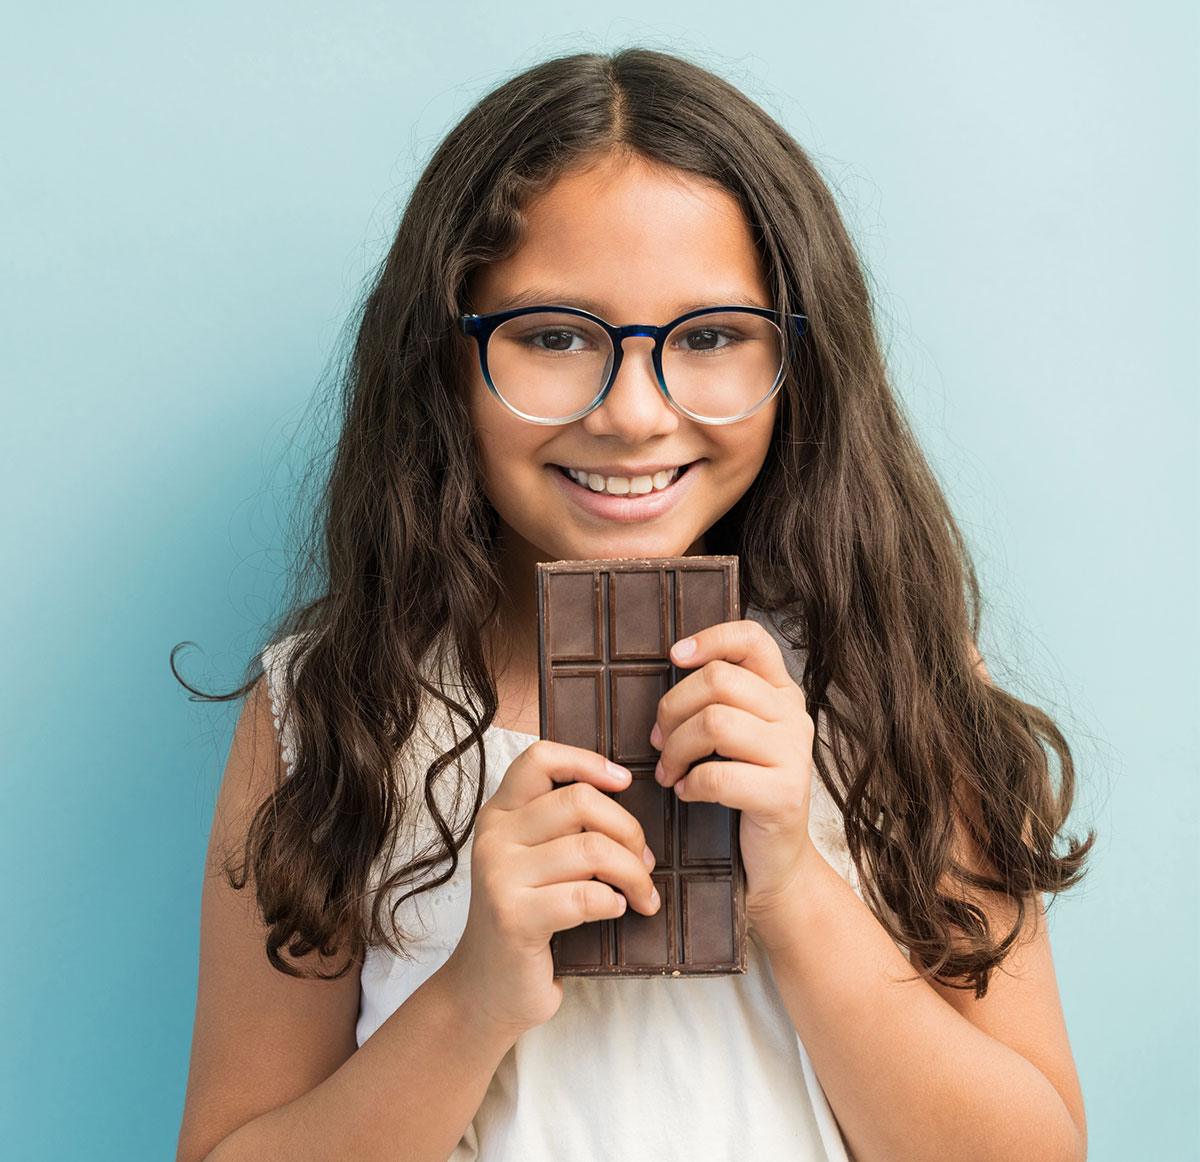 Young girl holding a chocolate bar